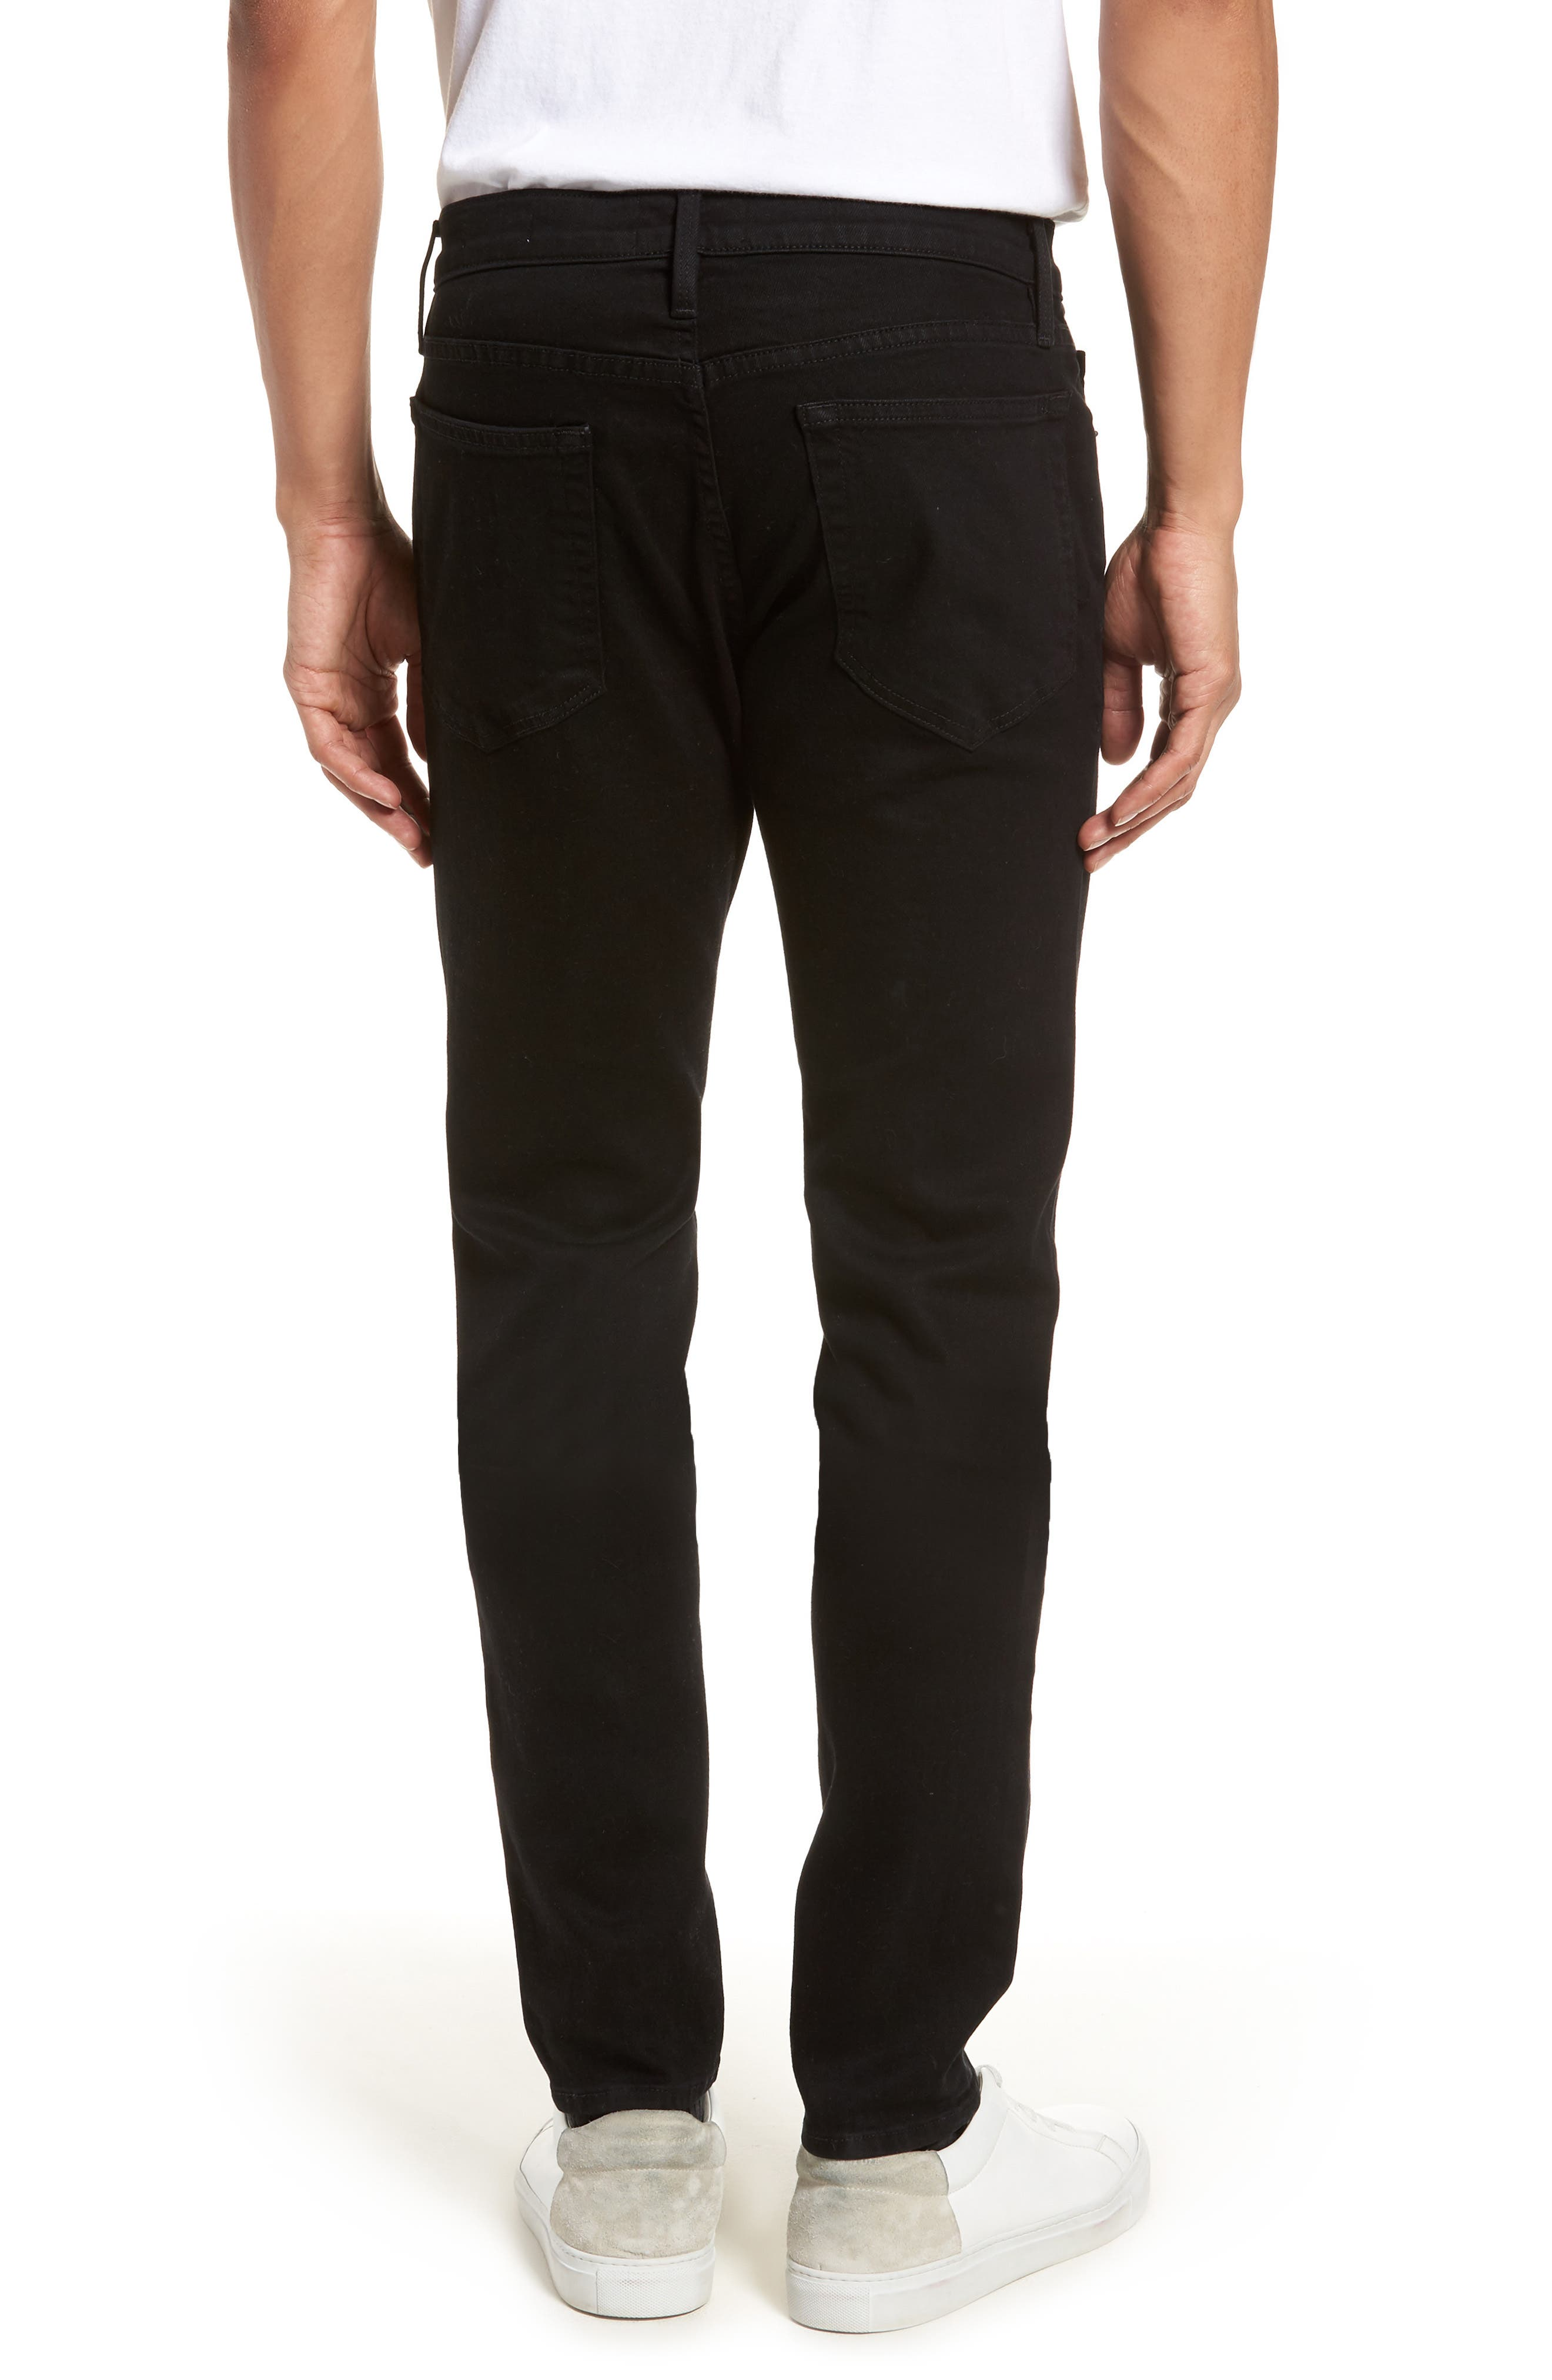 L'Homme Skinny Fit Jeans,                             Alternate thumbnail 2, color,                             NOIR